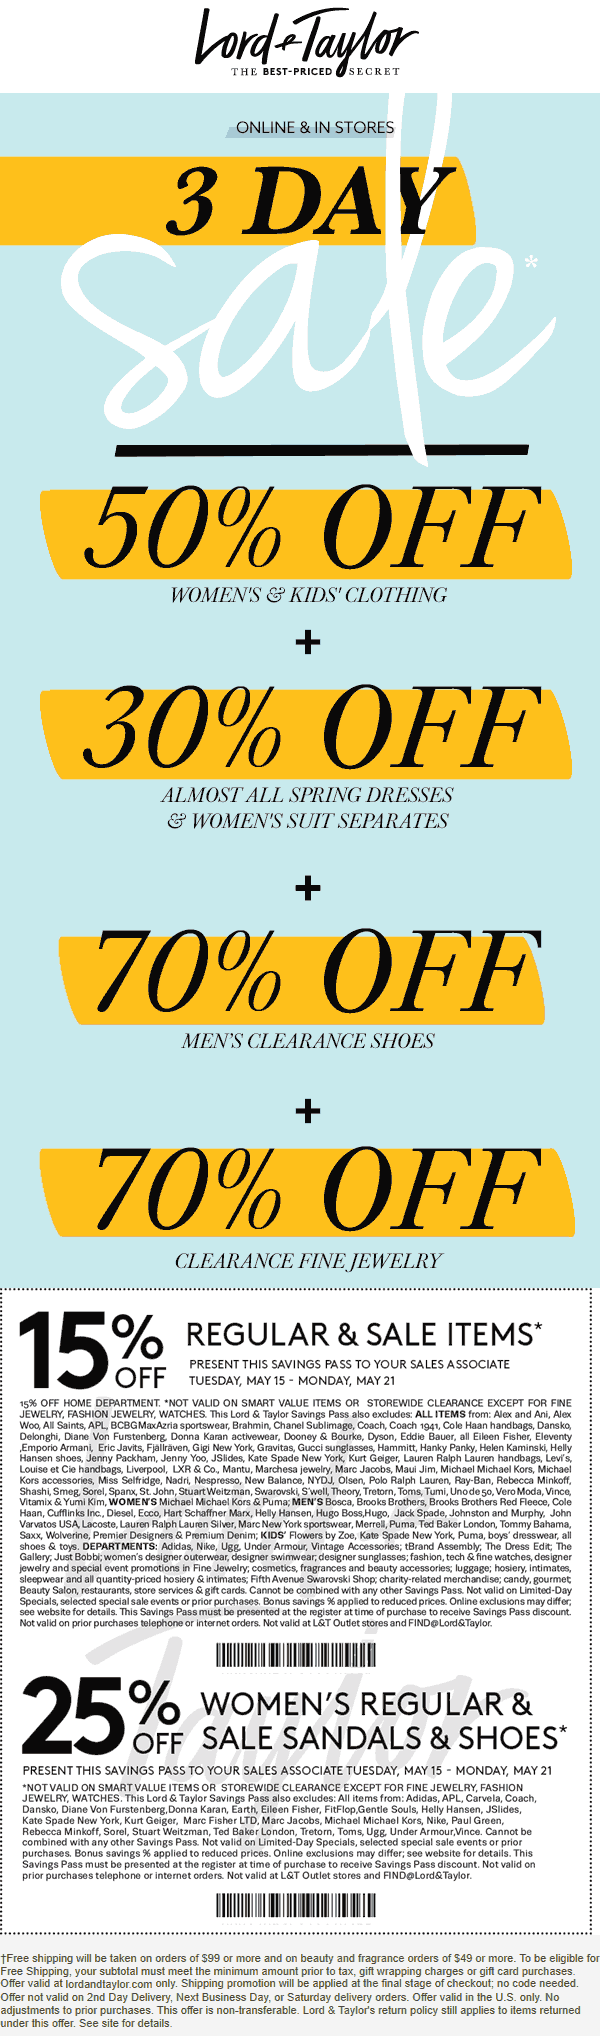 Lord & Taylor Coupon June 2019 15-70% off at Lord & Taylor, or online via promo code VIP